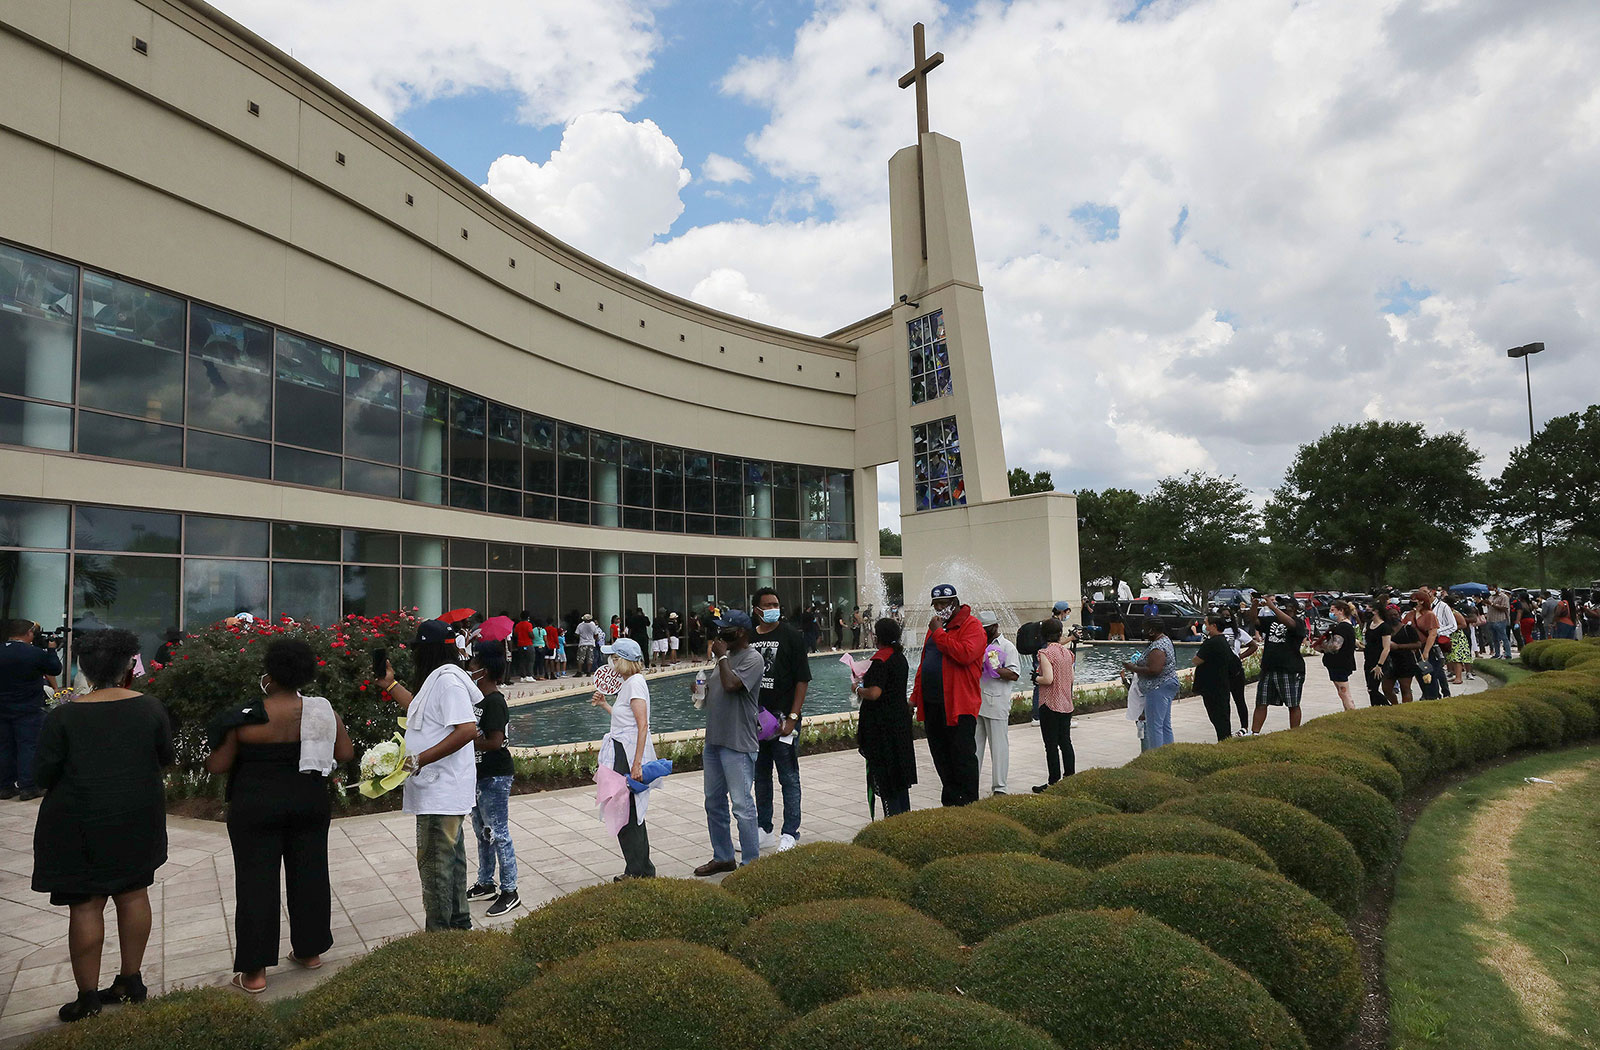 People wait in line to attend the public viewing for George Floyd outside the Fountain of Praise Church in Houston, Texas, on June 8.